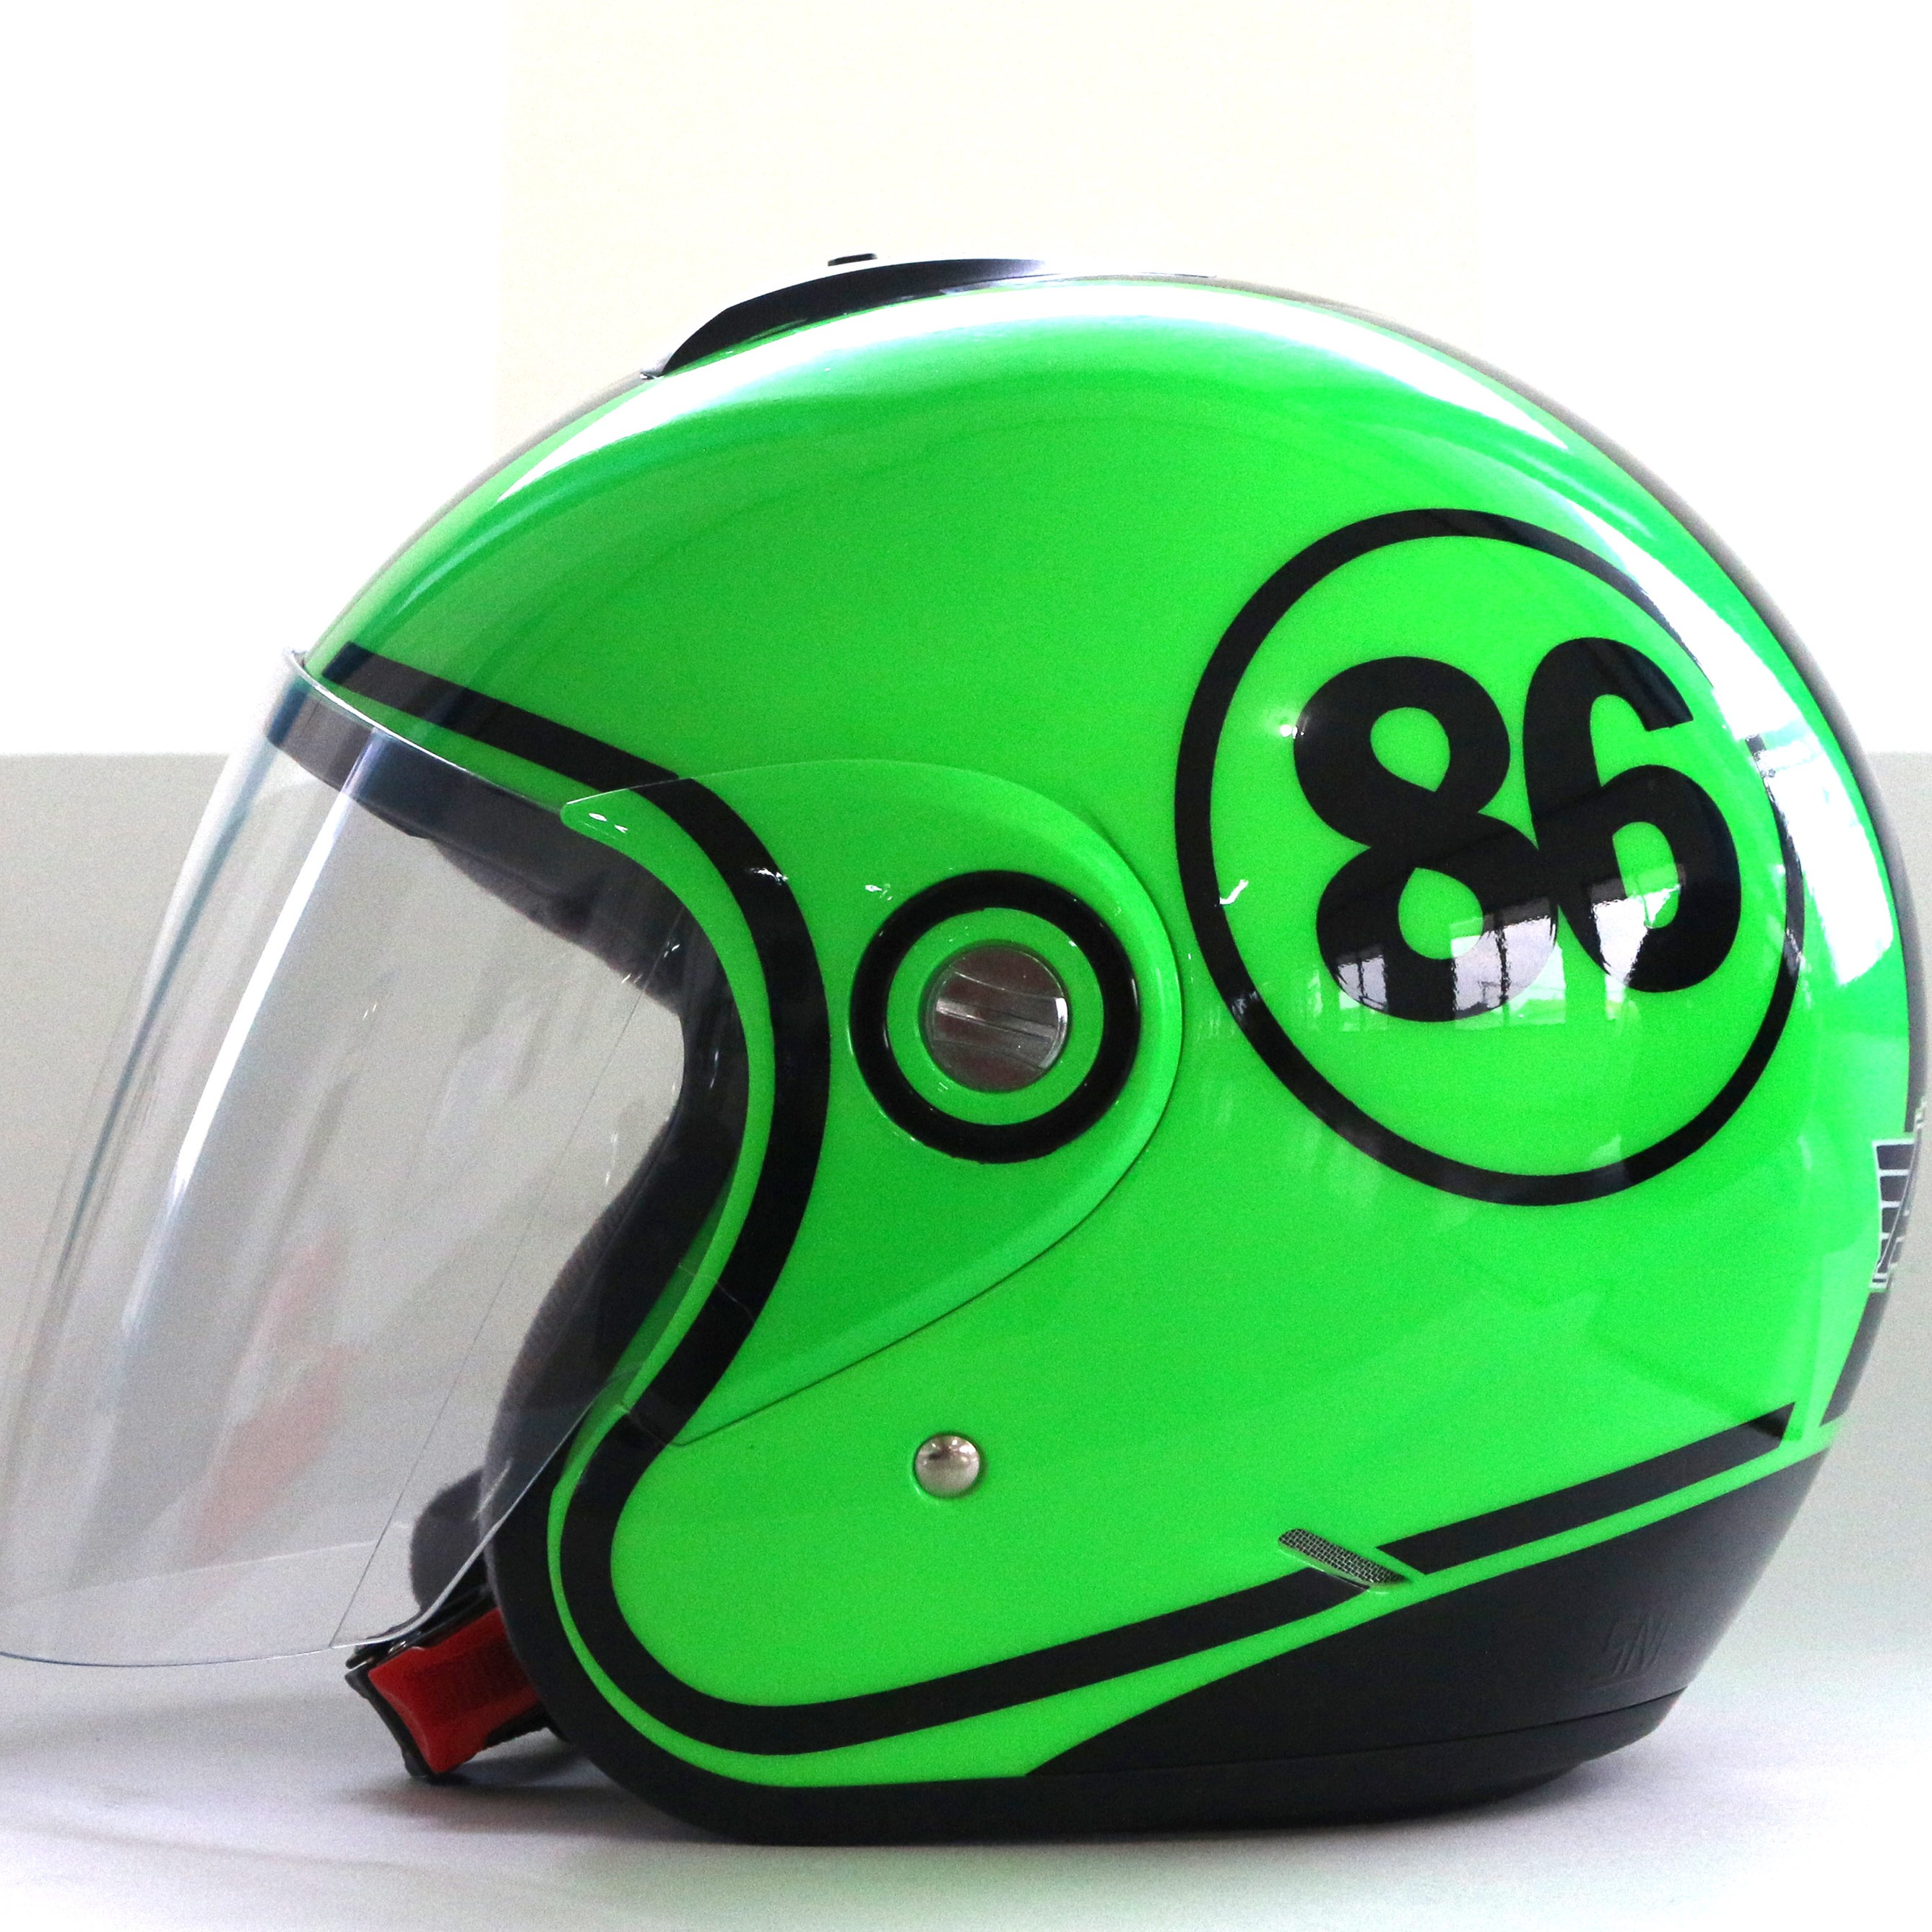 AVS Retro 86 (Green Flourescent) - Full Graphic - Half Face Helmet